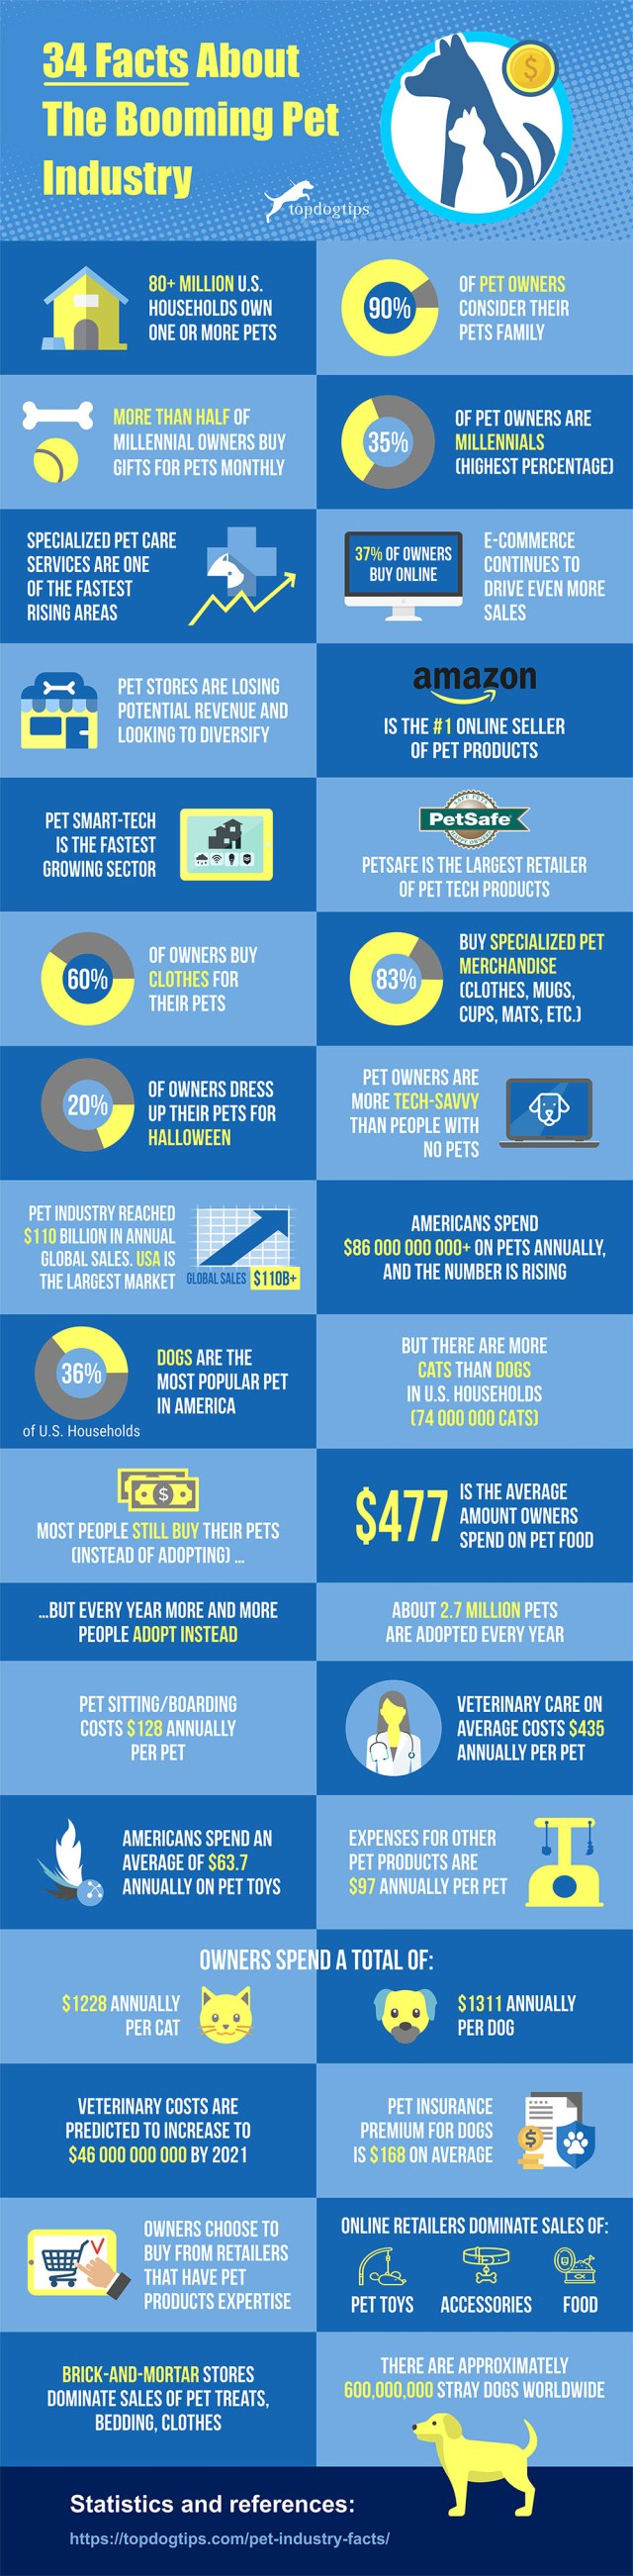 34 Facts About the Booming Pet Industry [Infographic]